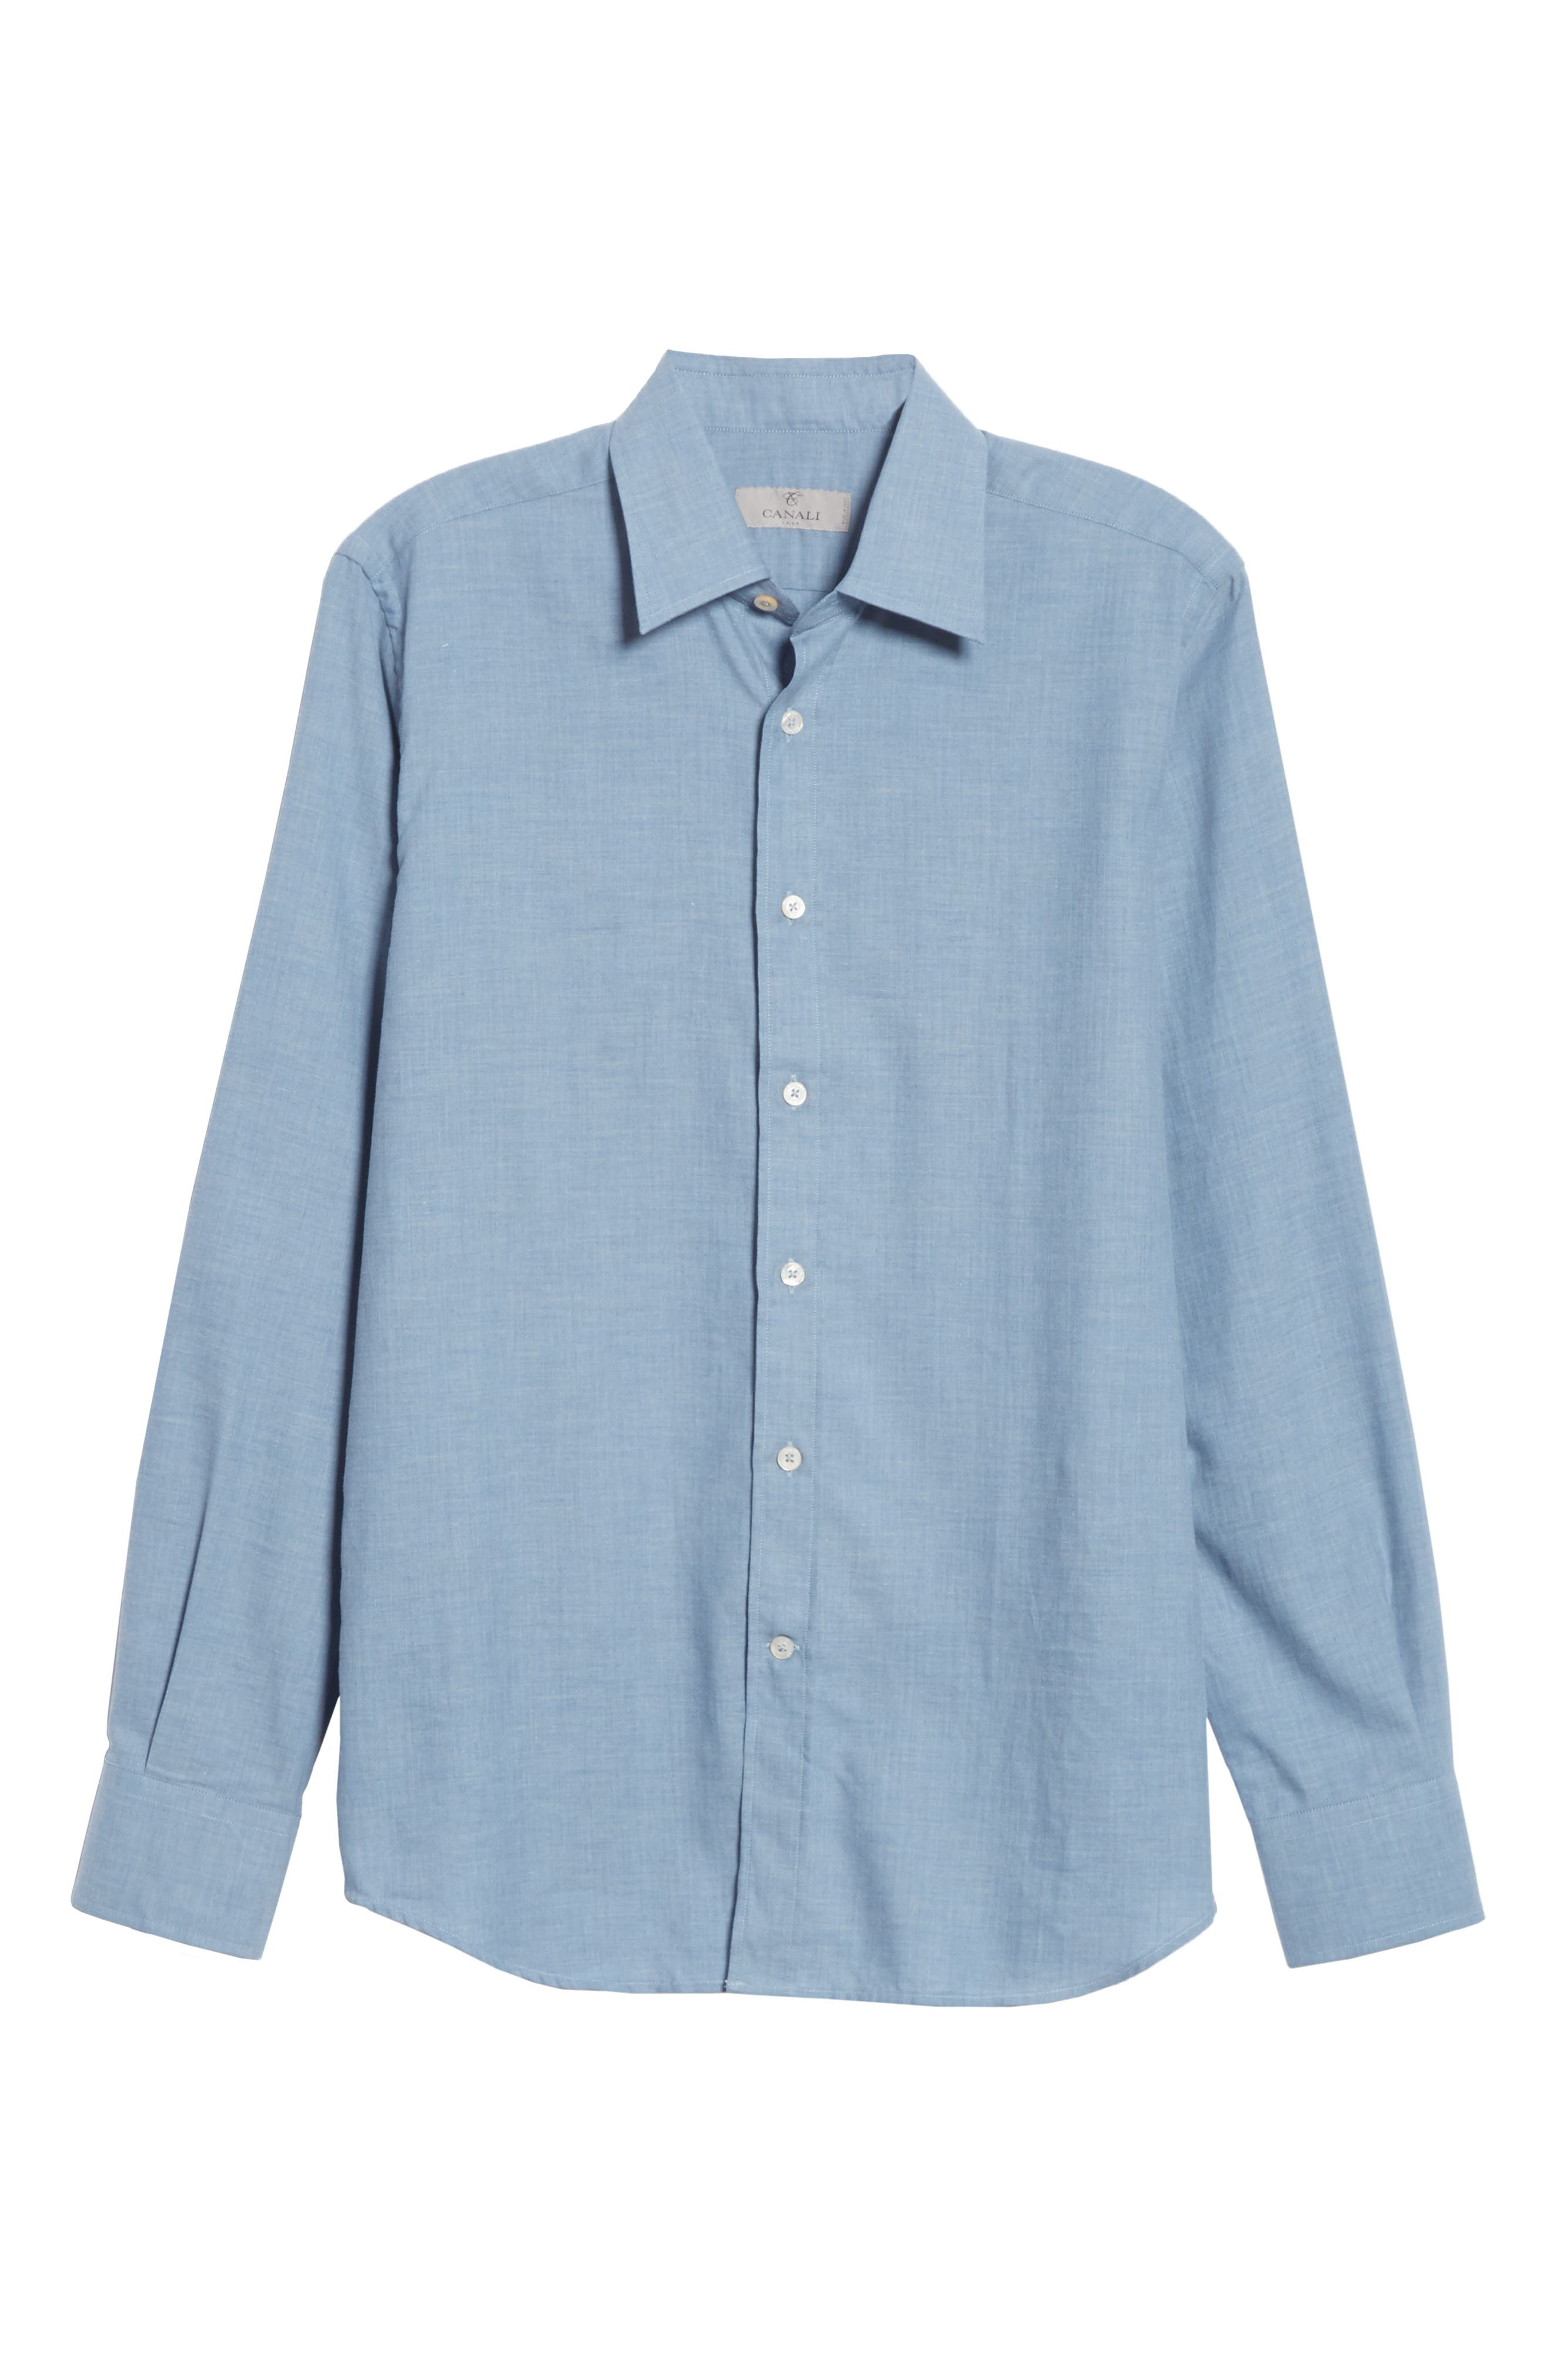 Classic Fit Herringbone Dress Shirt,                             Alternate thumbnail 8, color,                             Light Blue